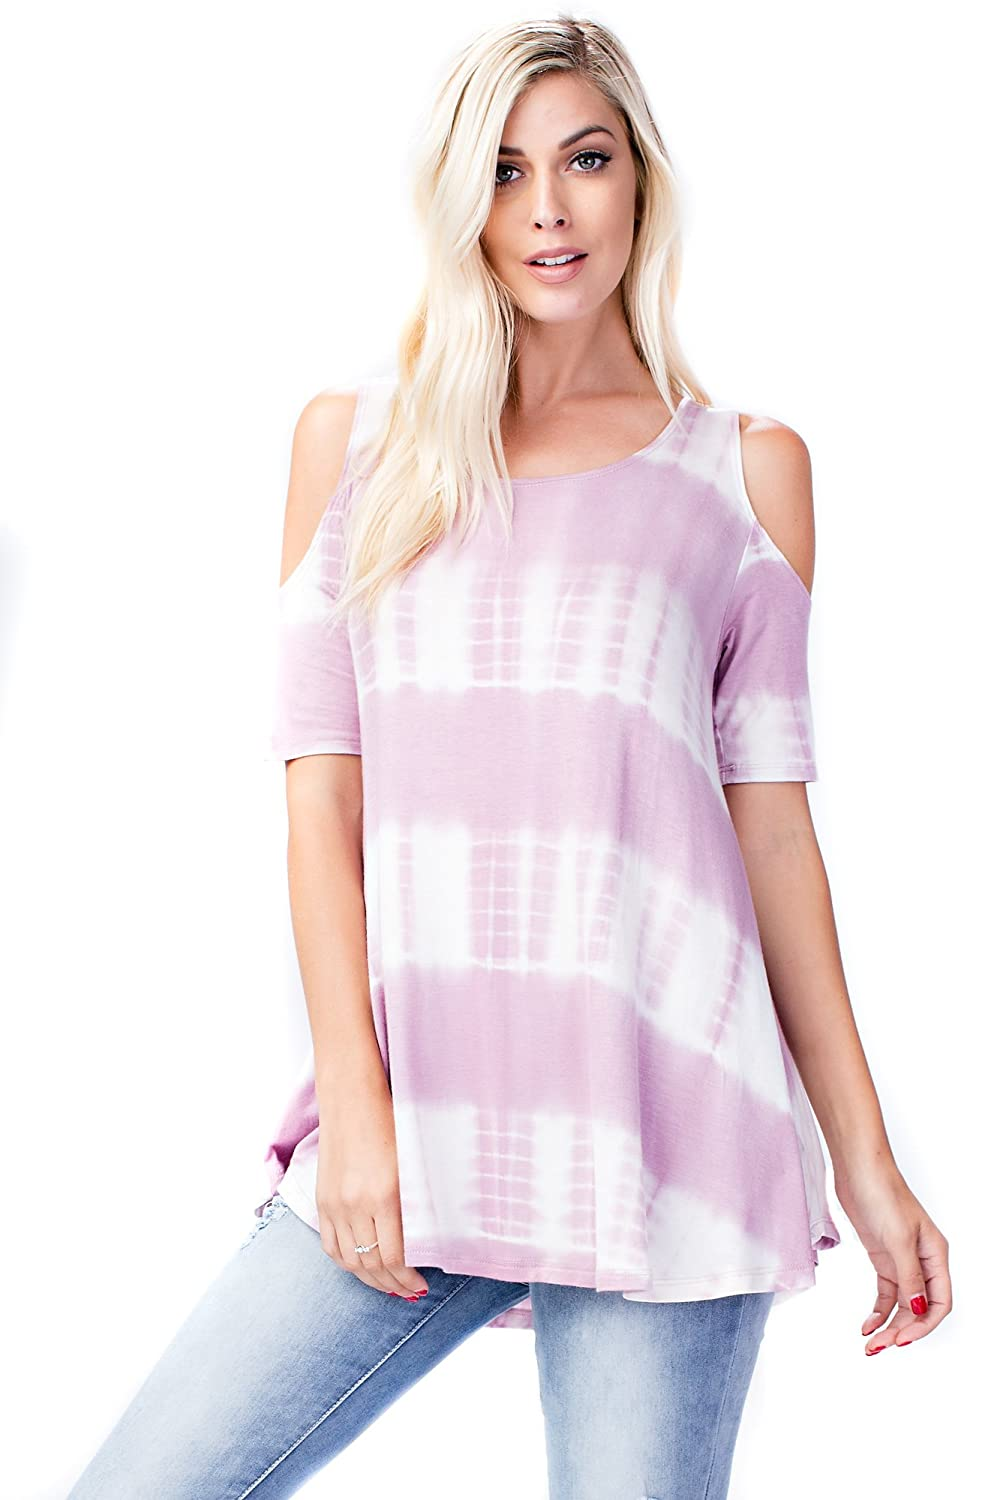 purplec Tiedye Allora Betsy Red Couture Women's Cold Shoulder Soft Knit Tunic Top (S3X)